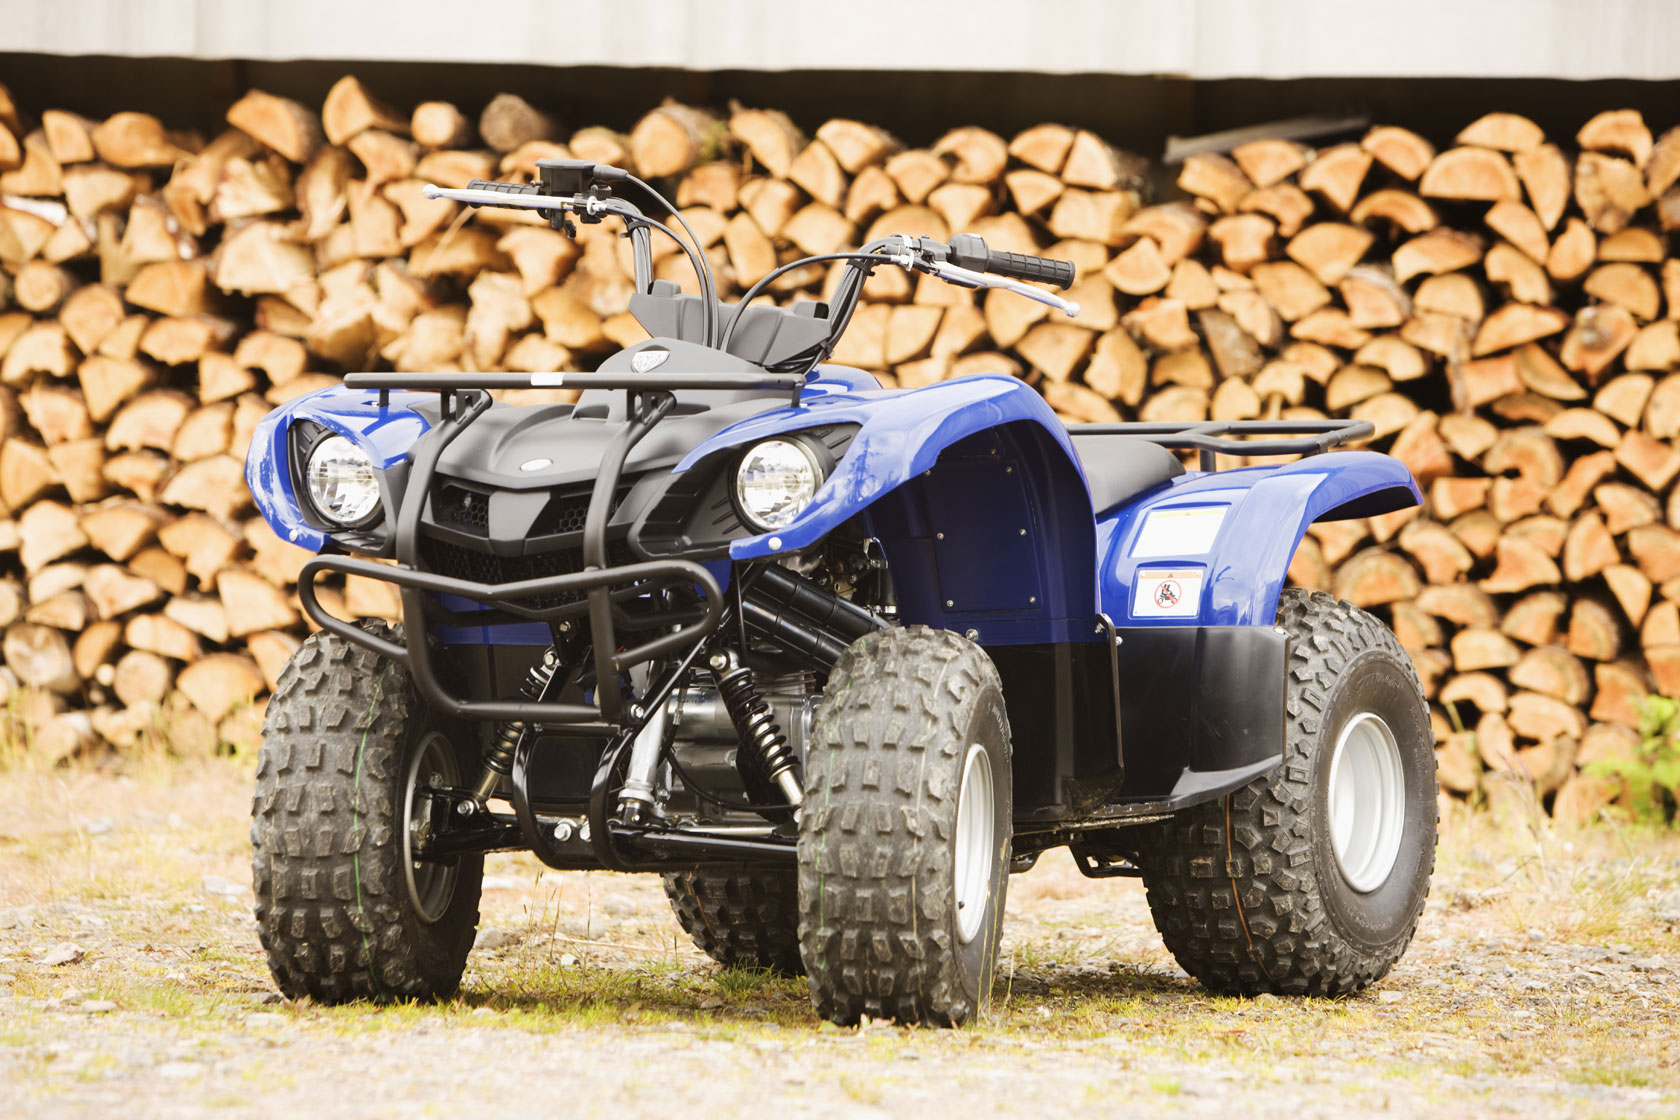 06 Yamaha Grizzly 125 Wiring Diagram Atv Yamaha Youth Grizzly .